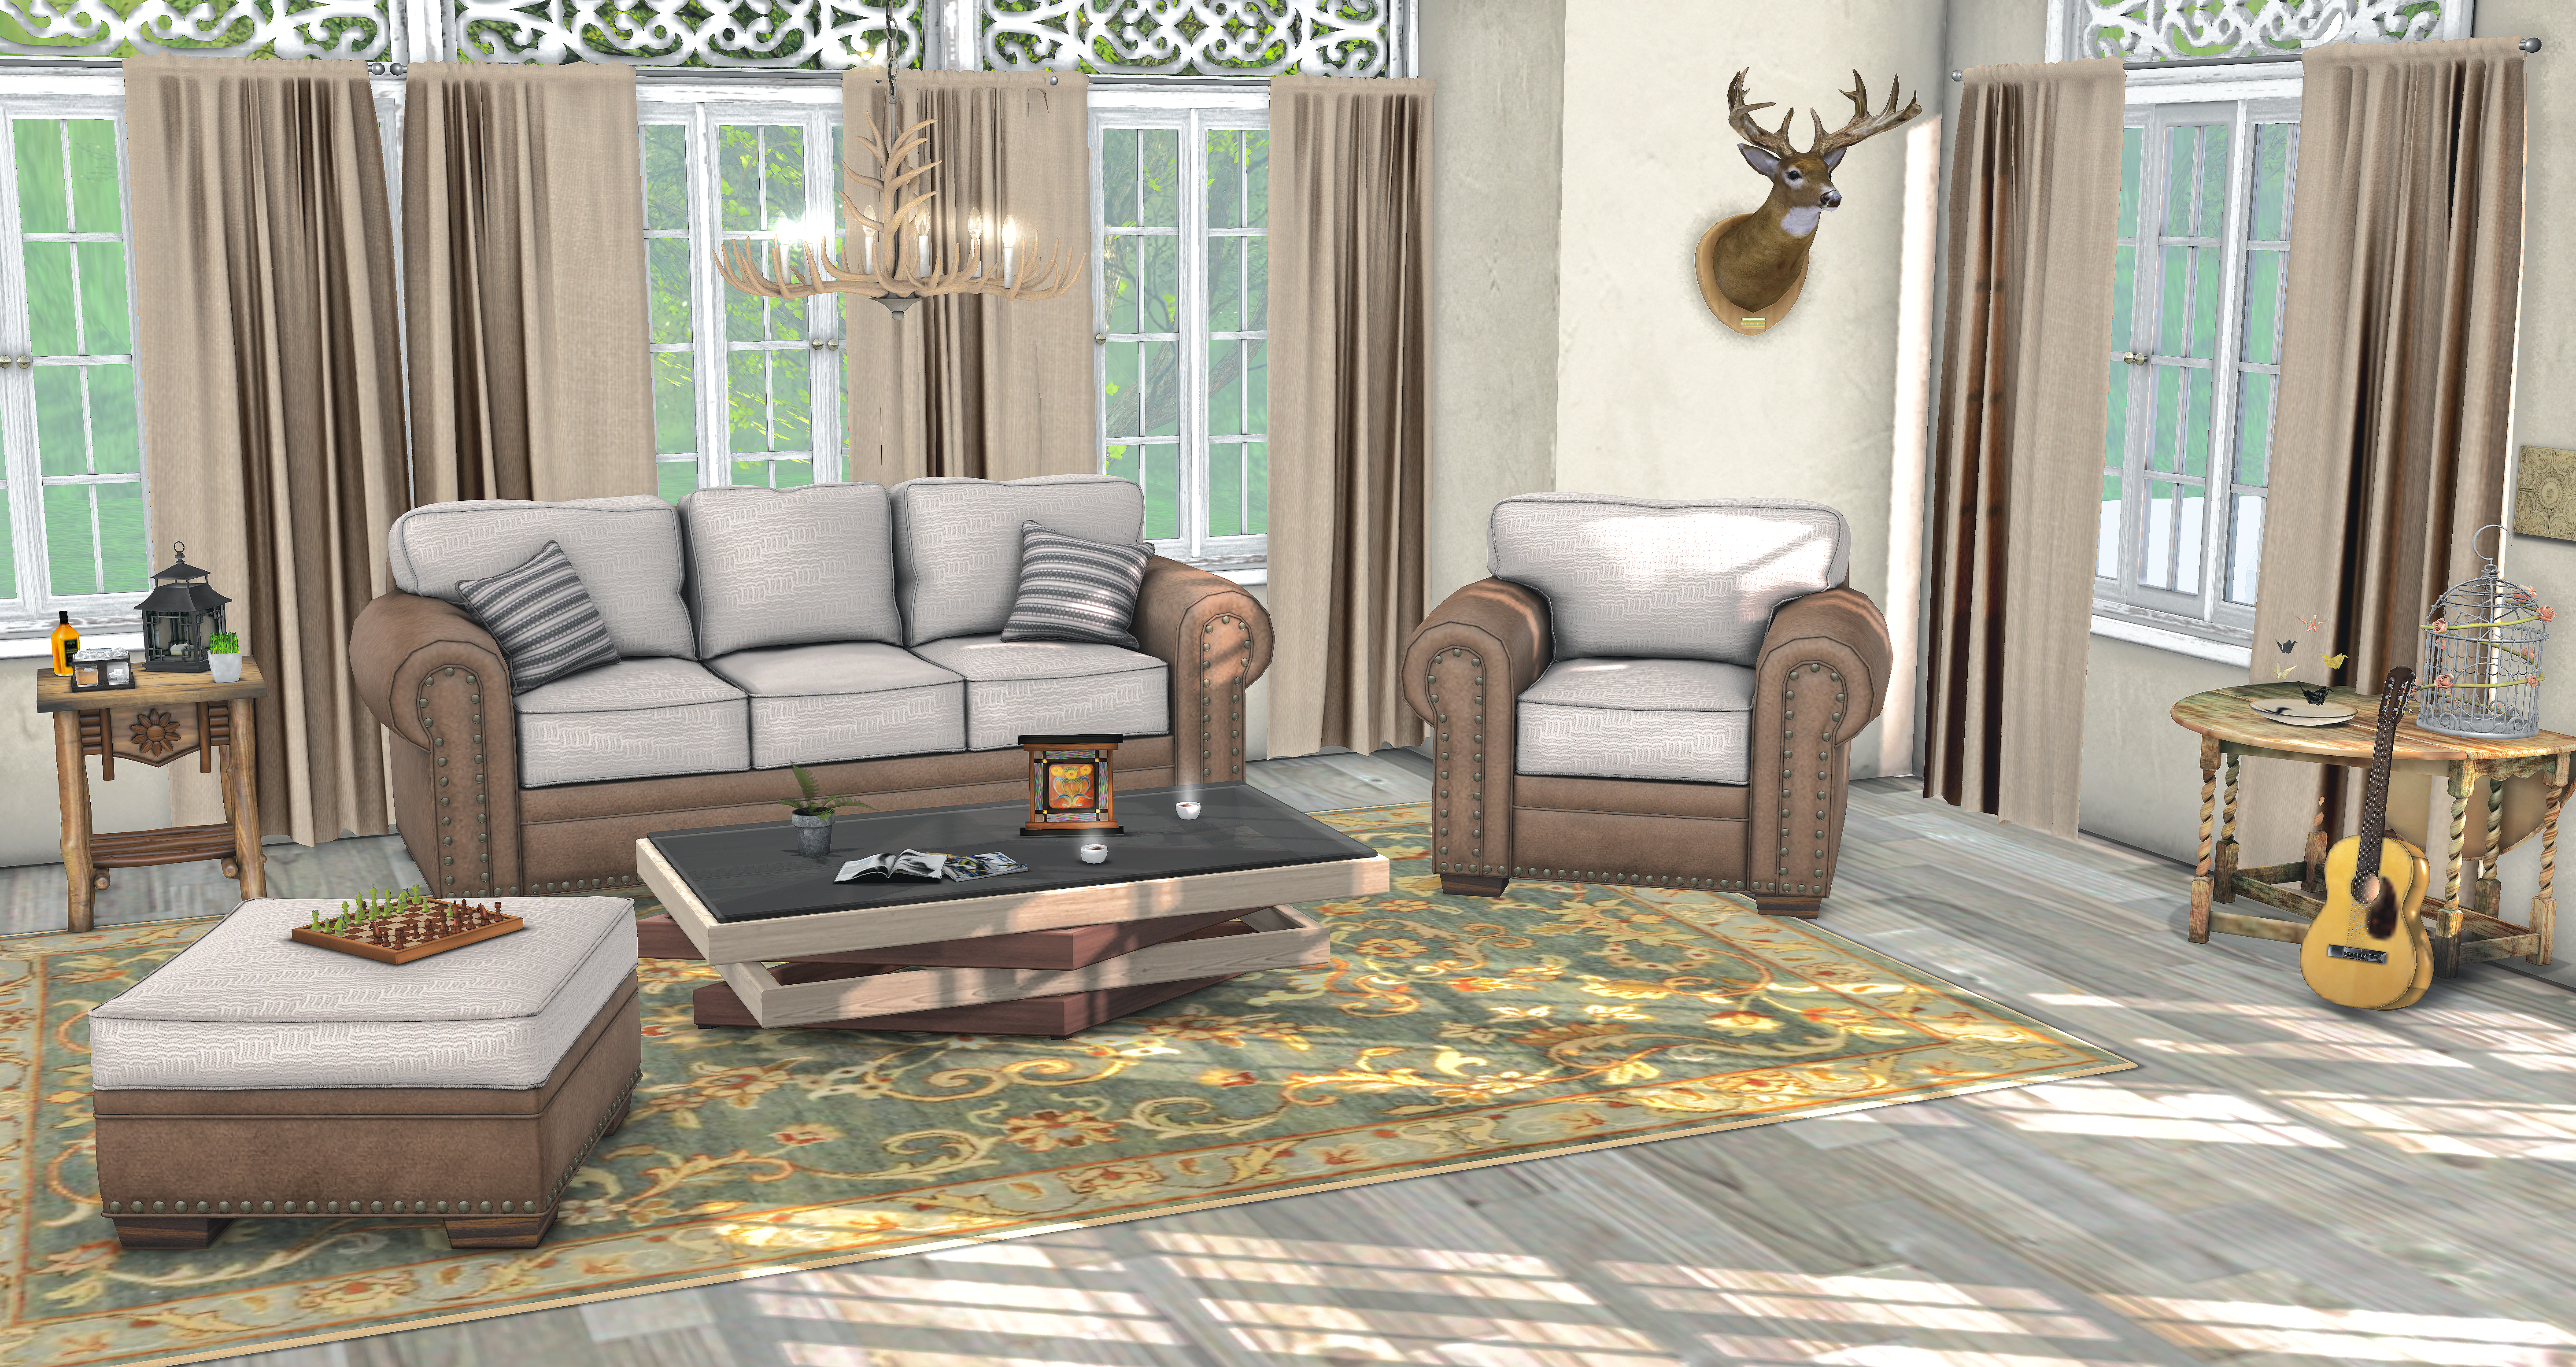 home design expo 14676356n02 309 living room view - Expo Home Design